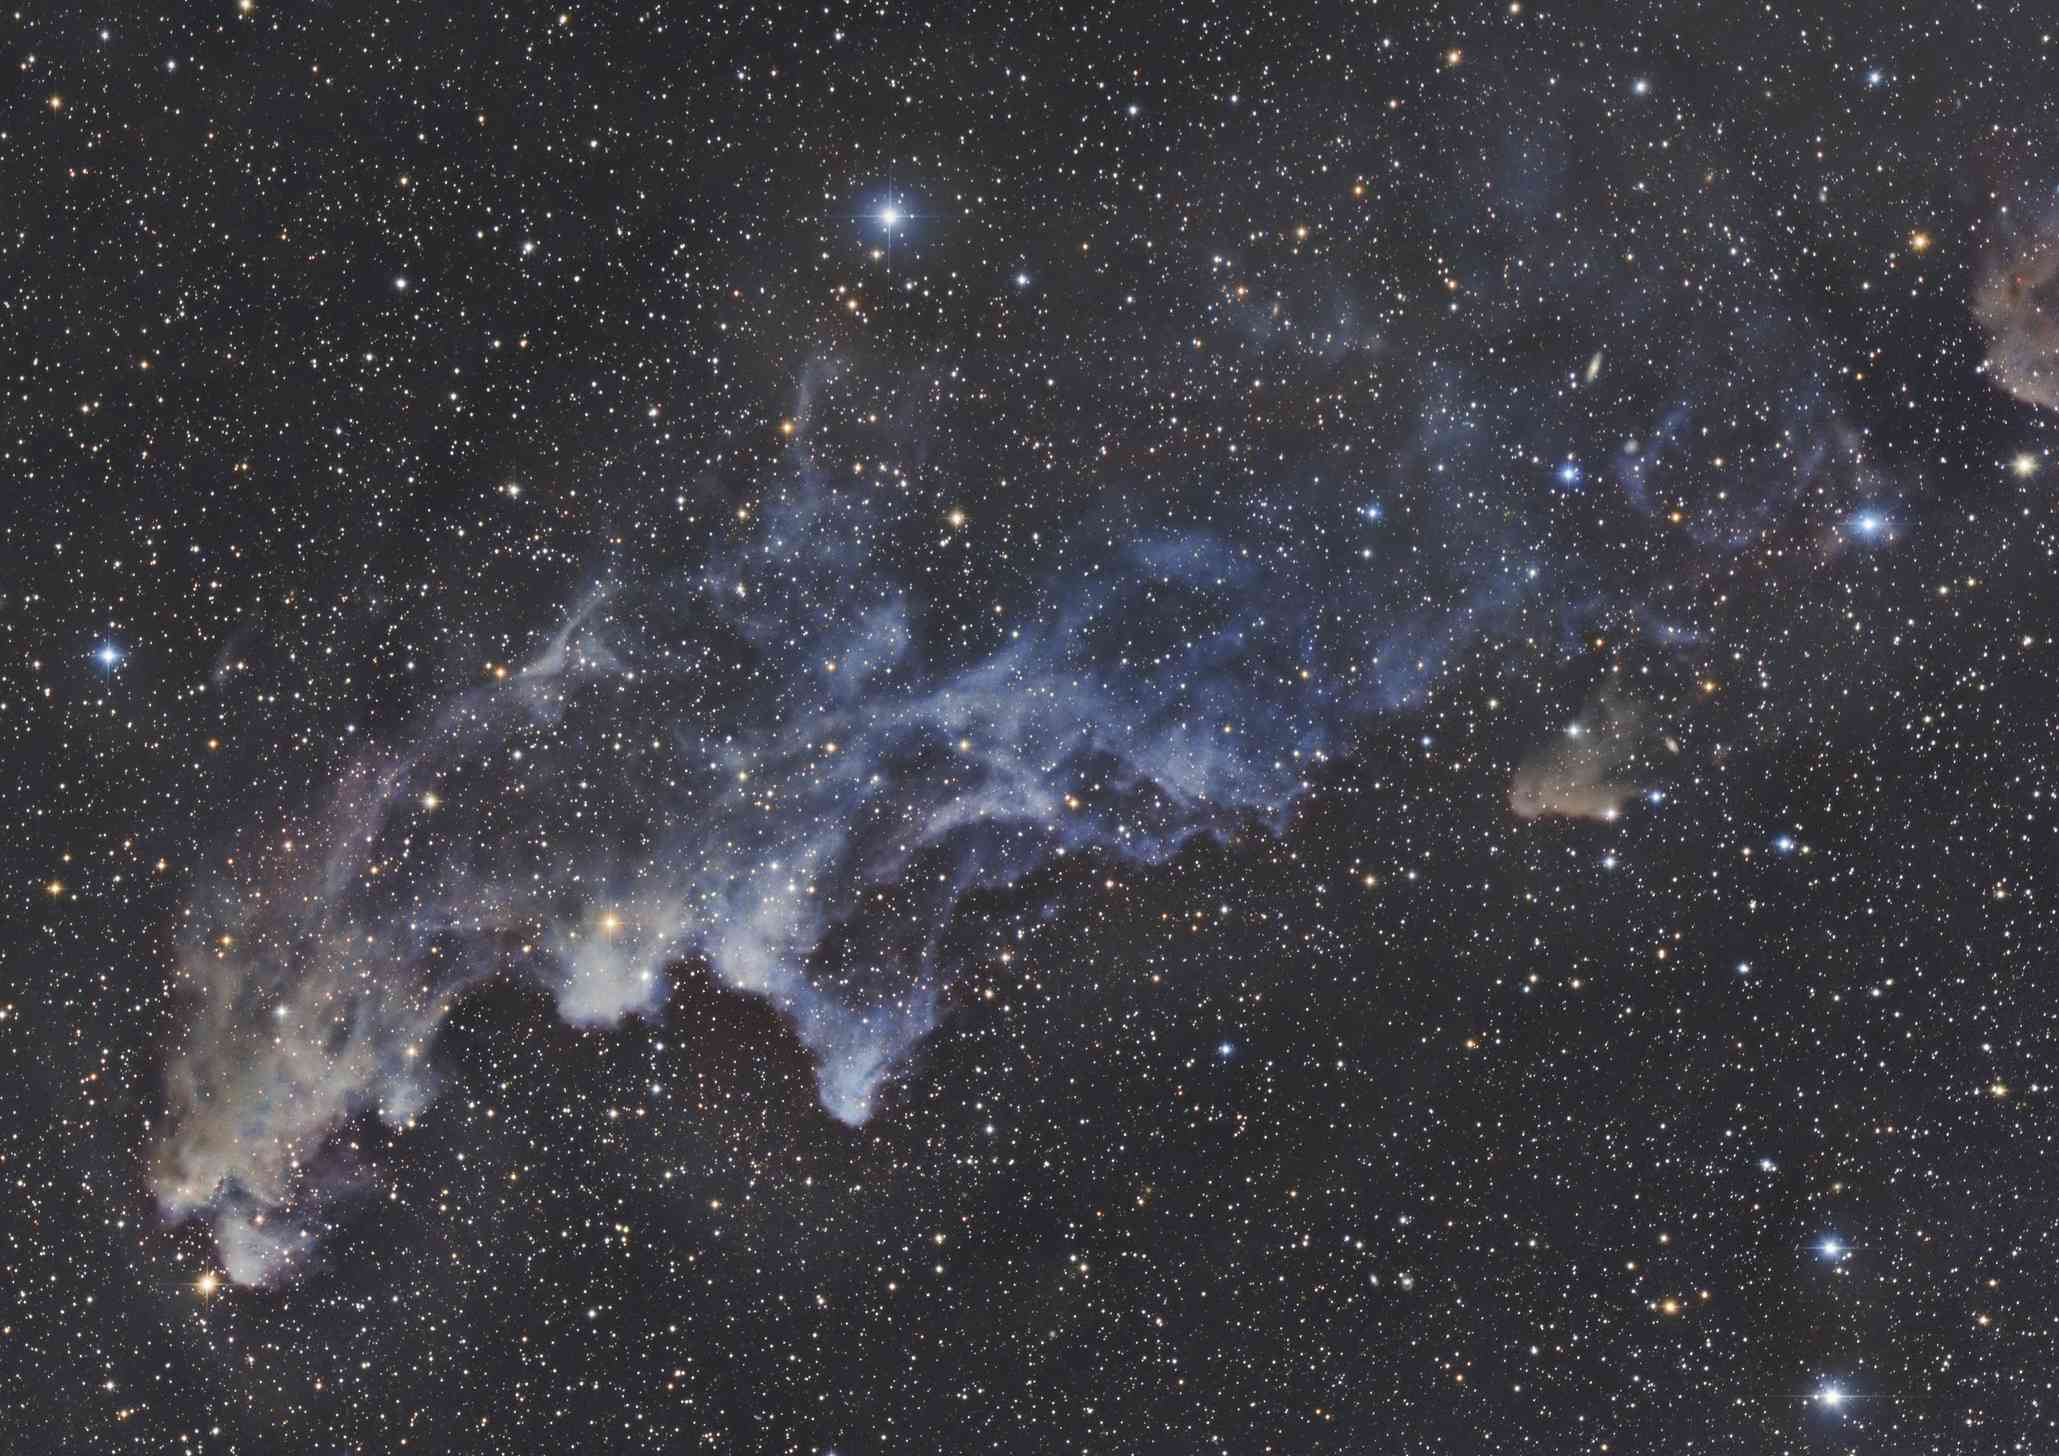 night sky showing Witch Head Nebula, Orion amid a dark sky filled with stars